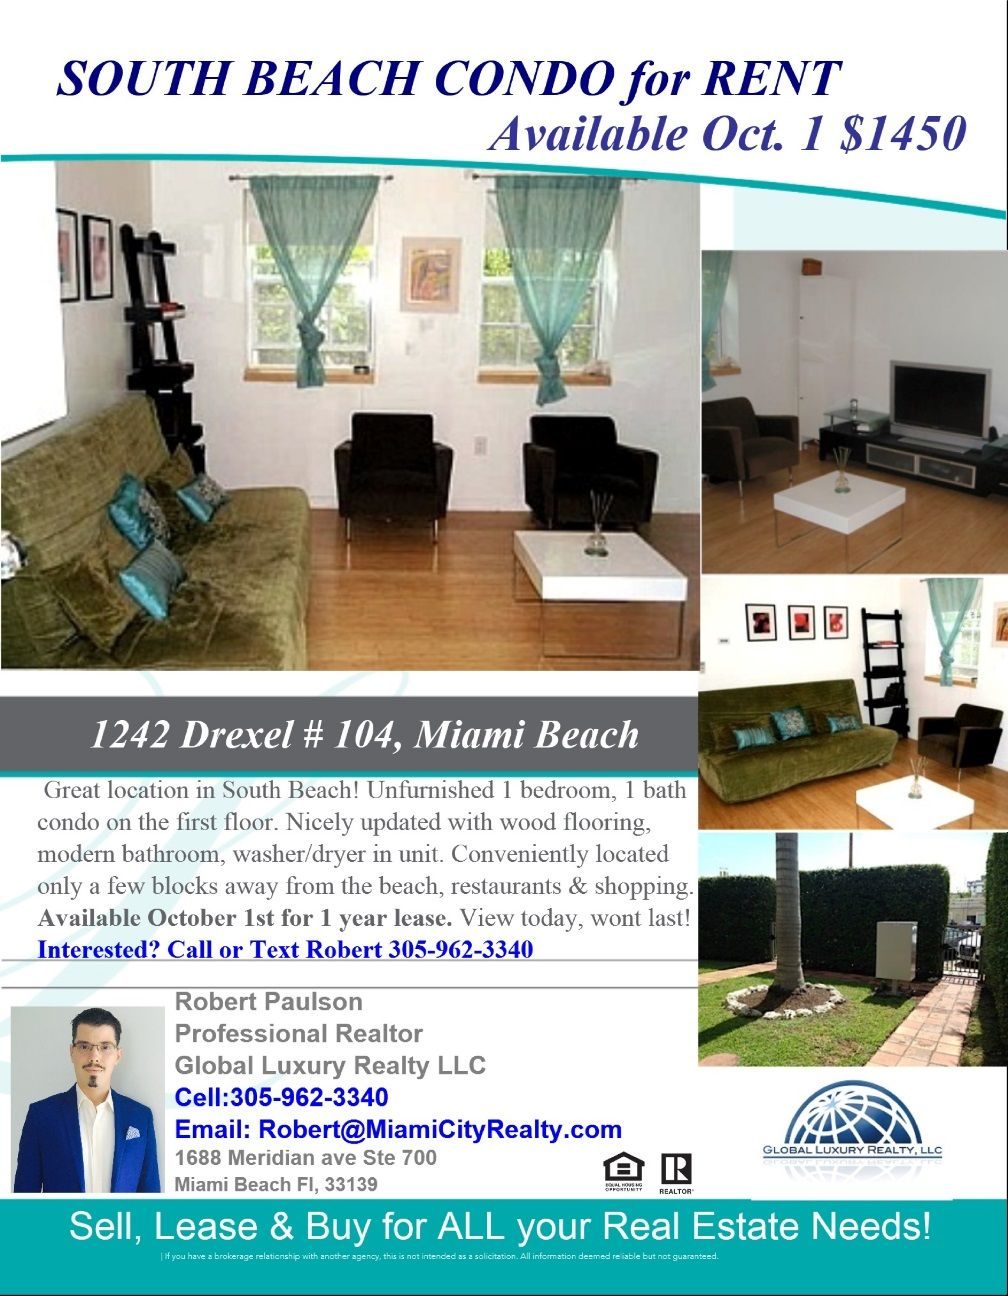 1242 Drexel Avenue Miami Beach Fl 33139 Available For Lease 1 450 Per Month Miamicityrealty Com South Beach Condo Miami Beach Condo Condos For Rent